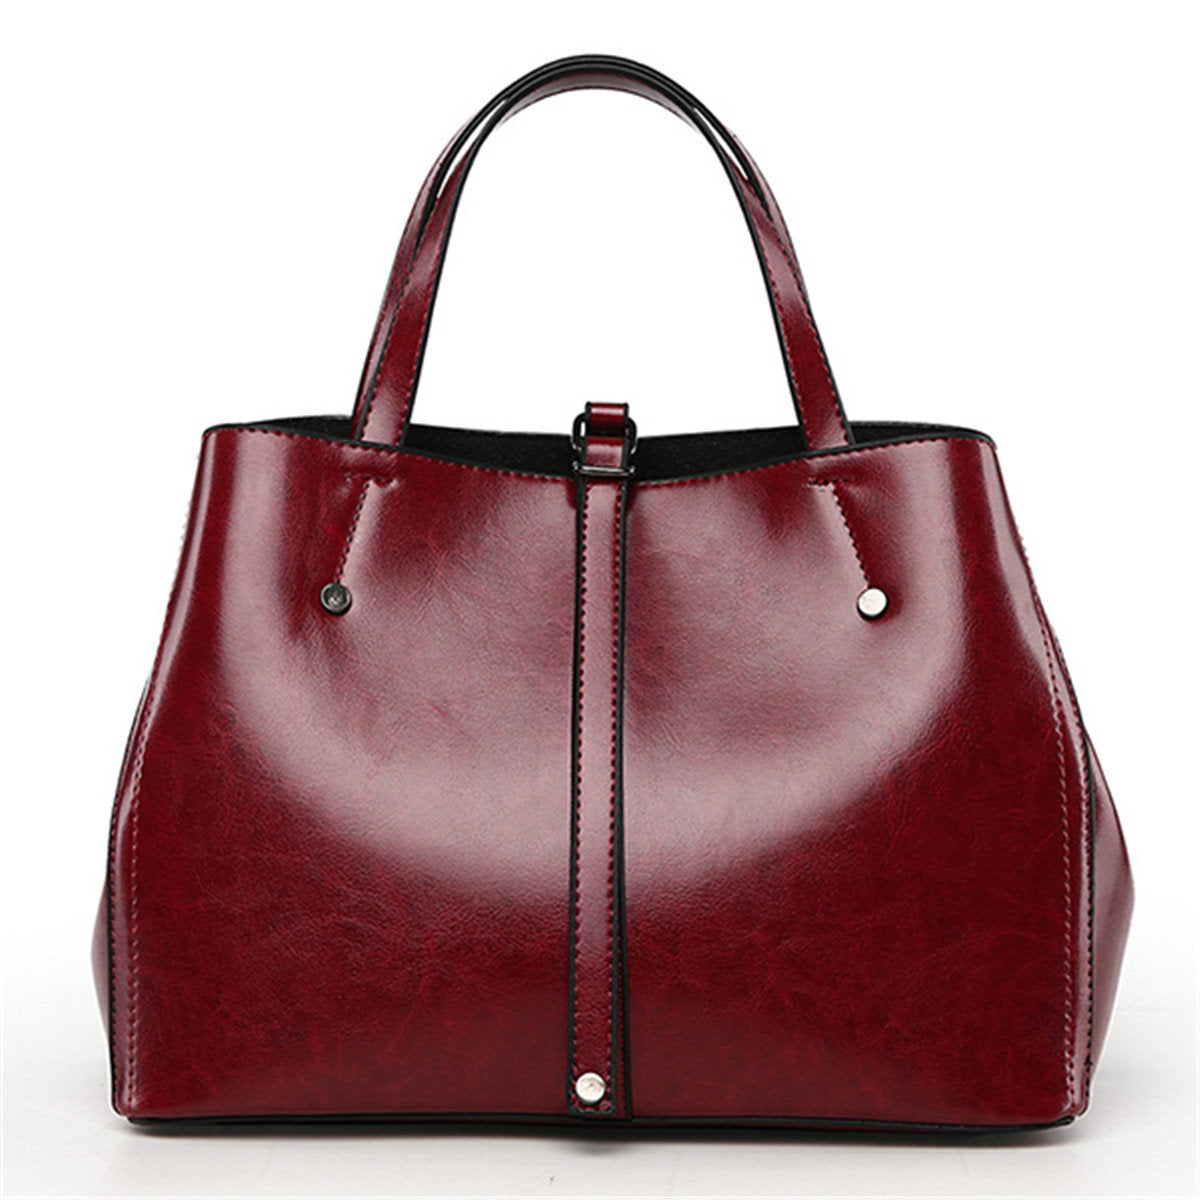 Leather Tote Bag Oil Wax Wine Tote Bags GiOli Shop